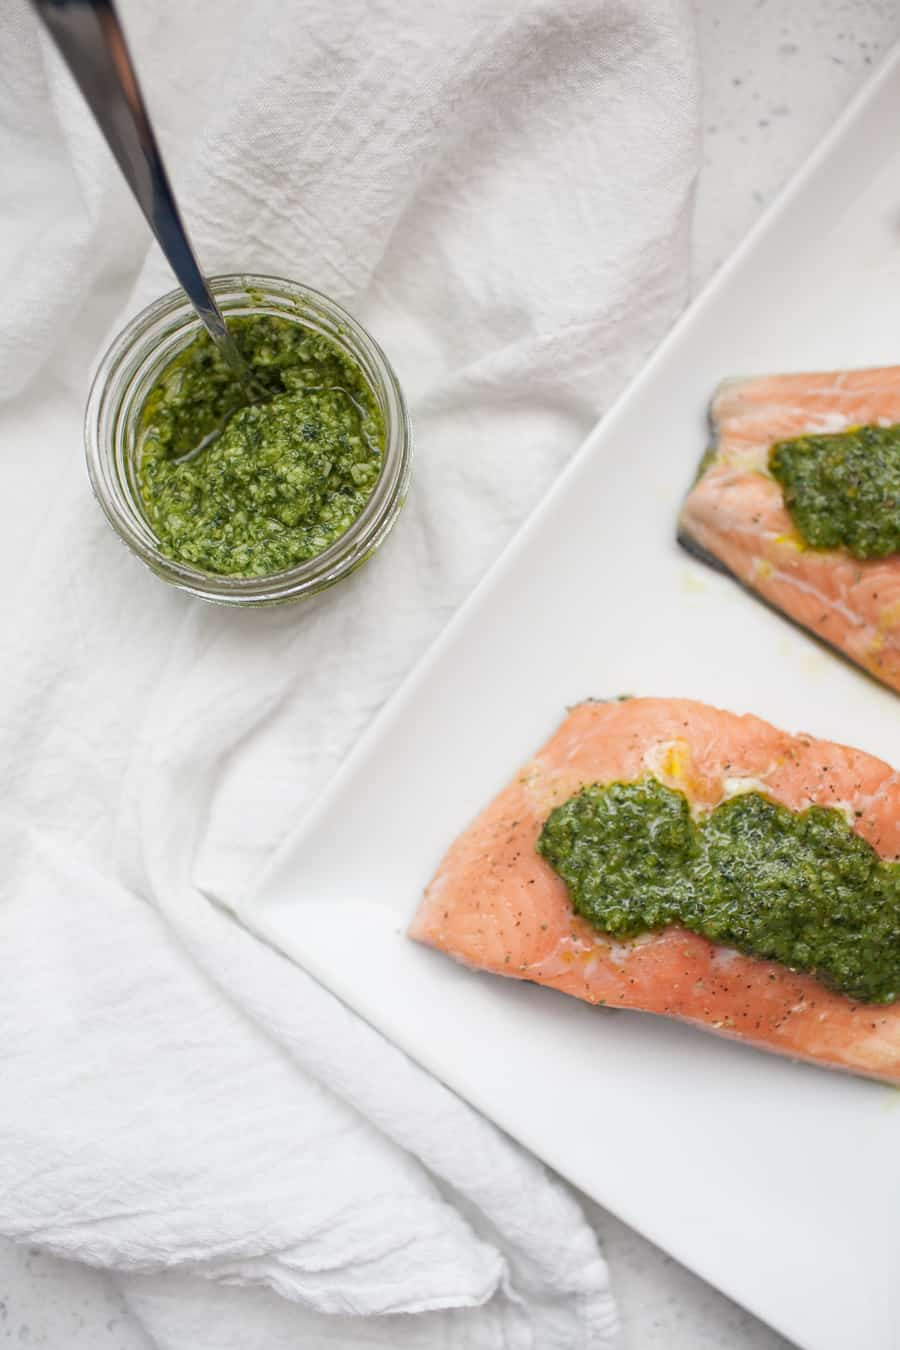 If you're looking for a quick dinner that won't lack in flavor, this kale arugula pesto salmon is it. Made with homemade pesto and baked for twenty minutes, it's a quick and flavorful dinner recipe. Baking salmon in the oven is a quick way to make it and easy for someone who might not make salmon often! salmon pesto | pesto salmon | homemade pesto | baked salmon | salmon dinner | how to bake salmon | baked salmon dinner